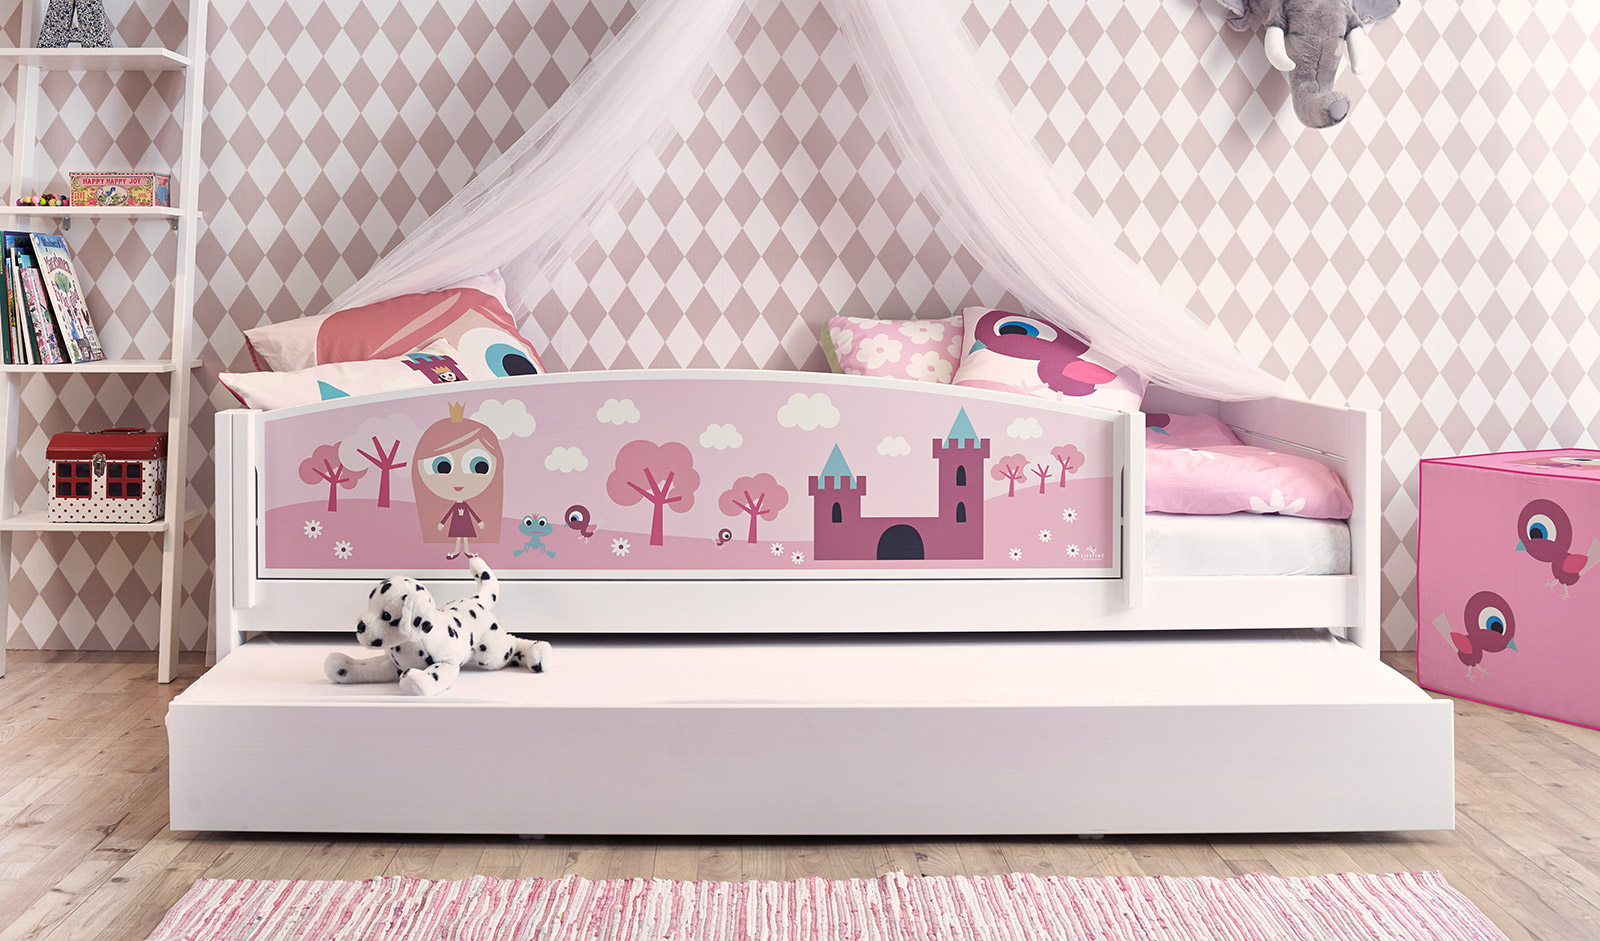 kinderbett selber bauen prinzessin. Black Bedroom Furniture Sets. Home Design Ideas